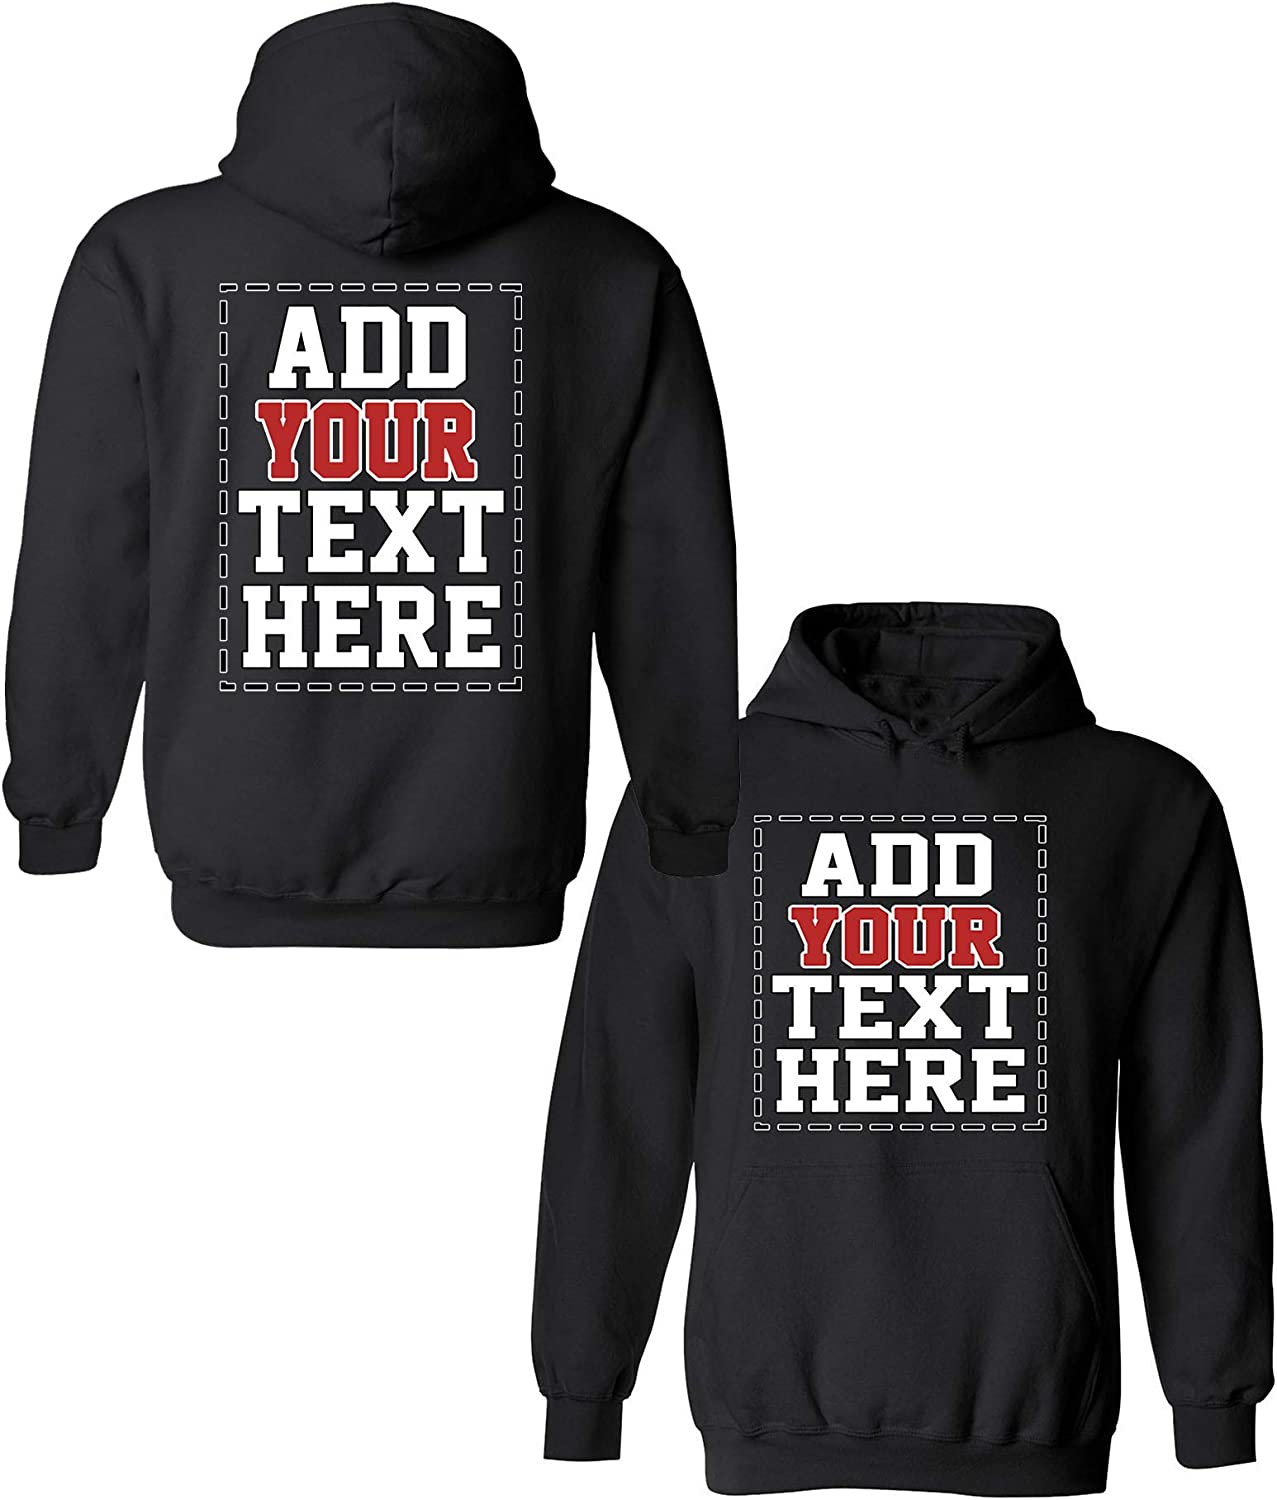 Design Your Our shop most popular OWN Hoodie - Custom Hoodies for Person Men Women Ranking TOP9